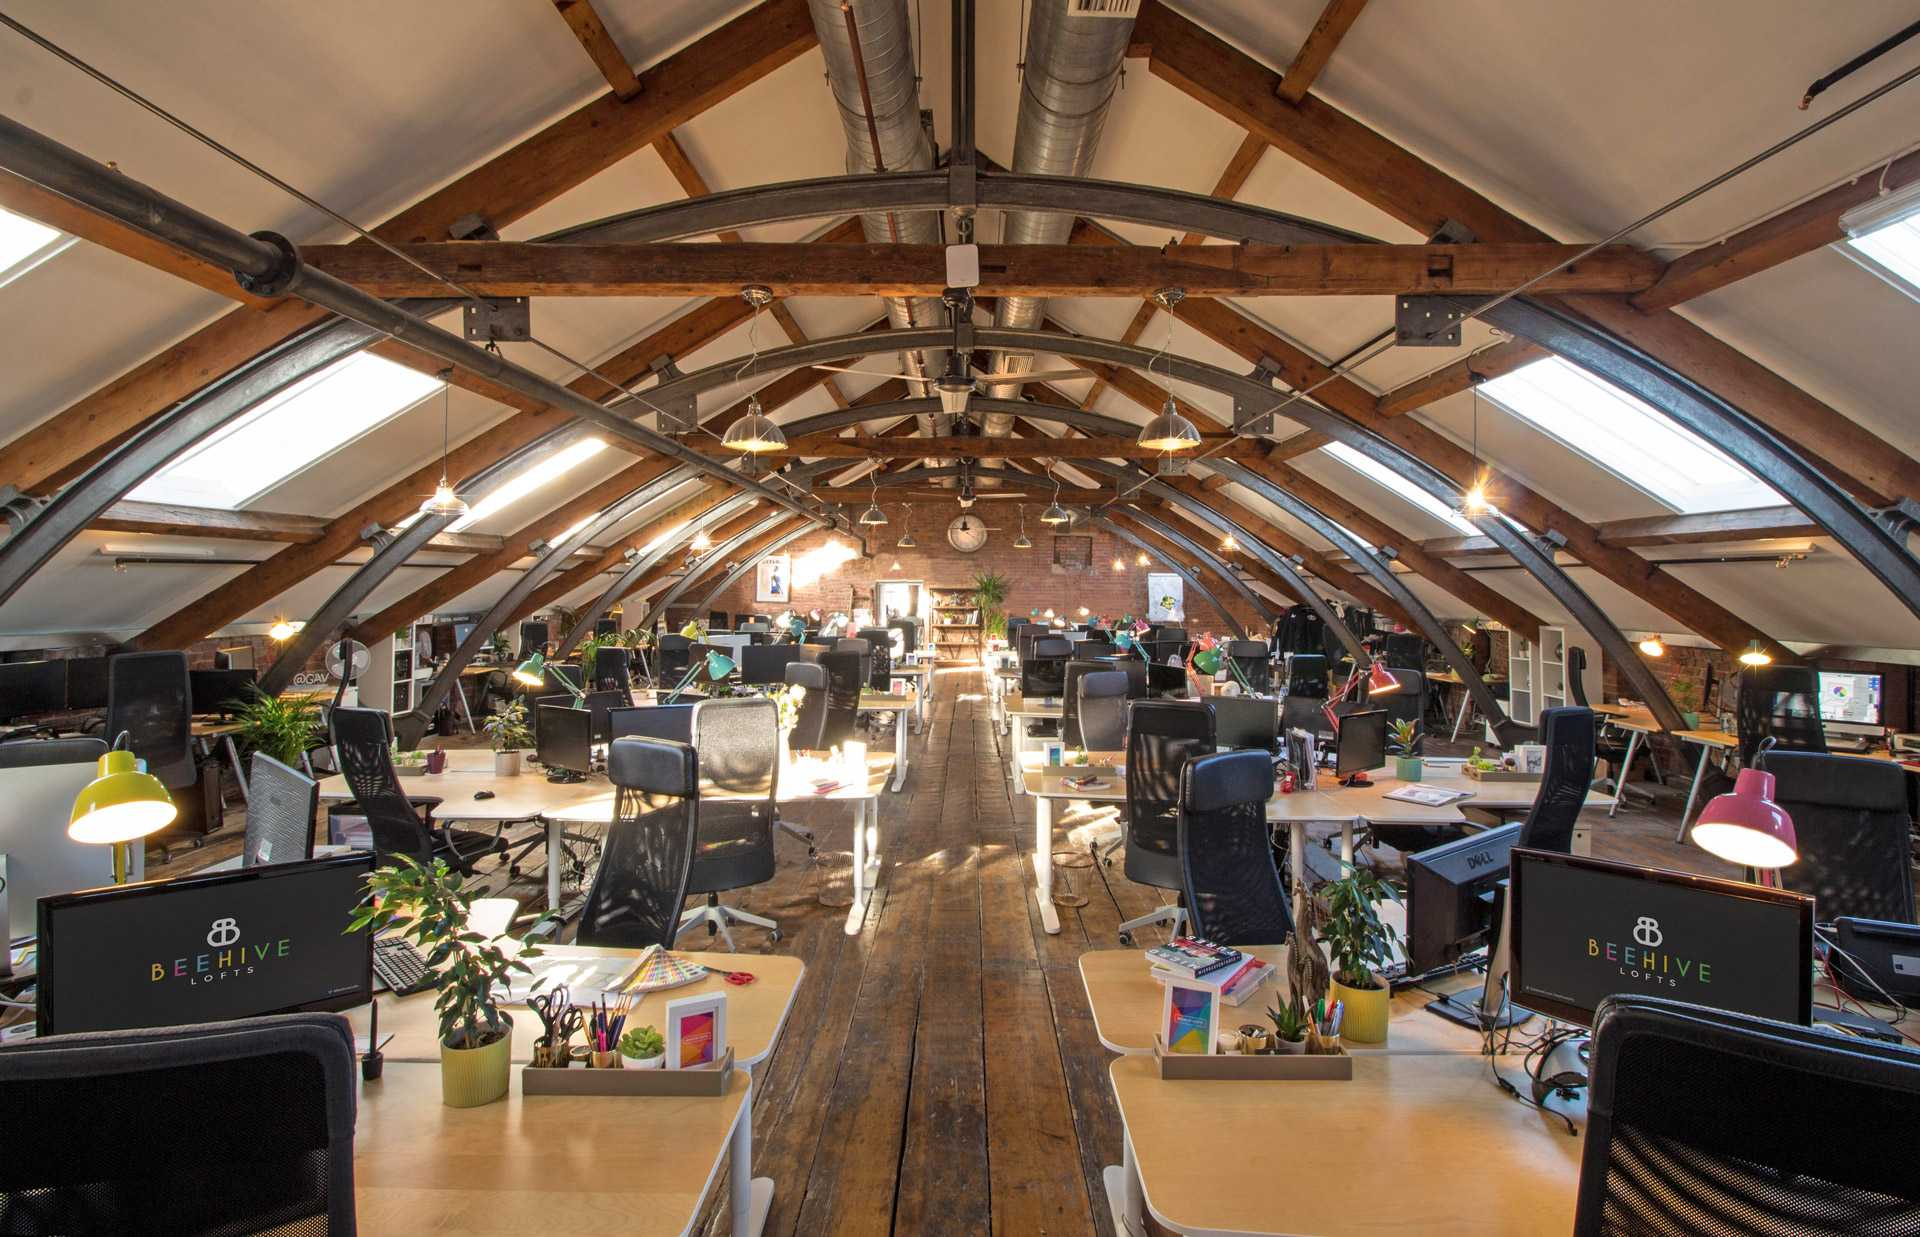 A central view of the Upper Loft workspace